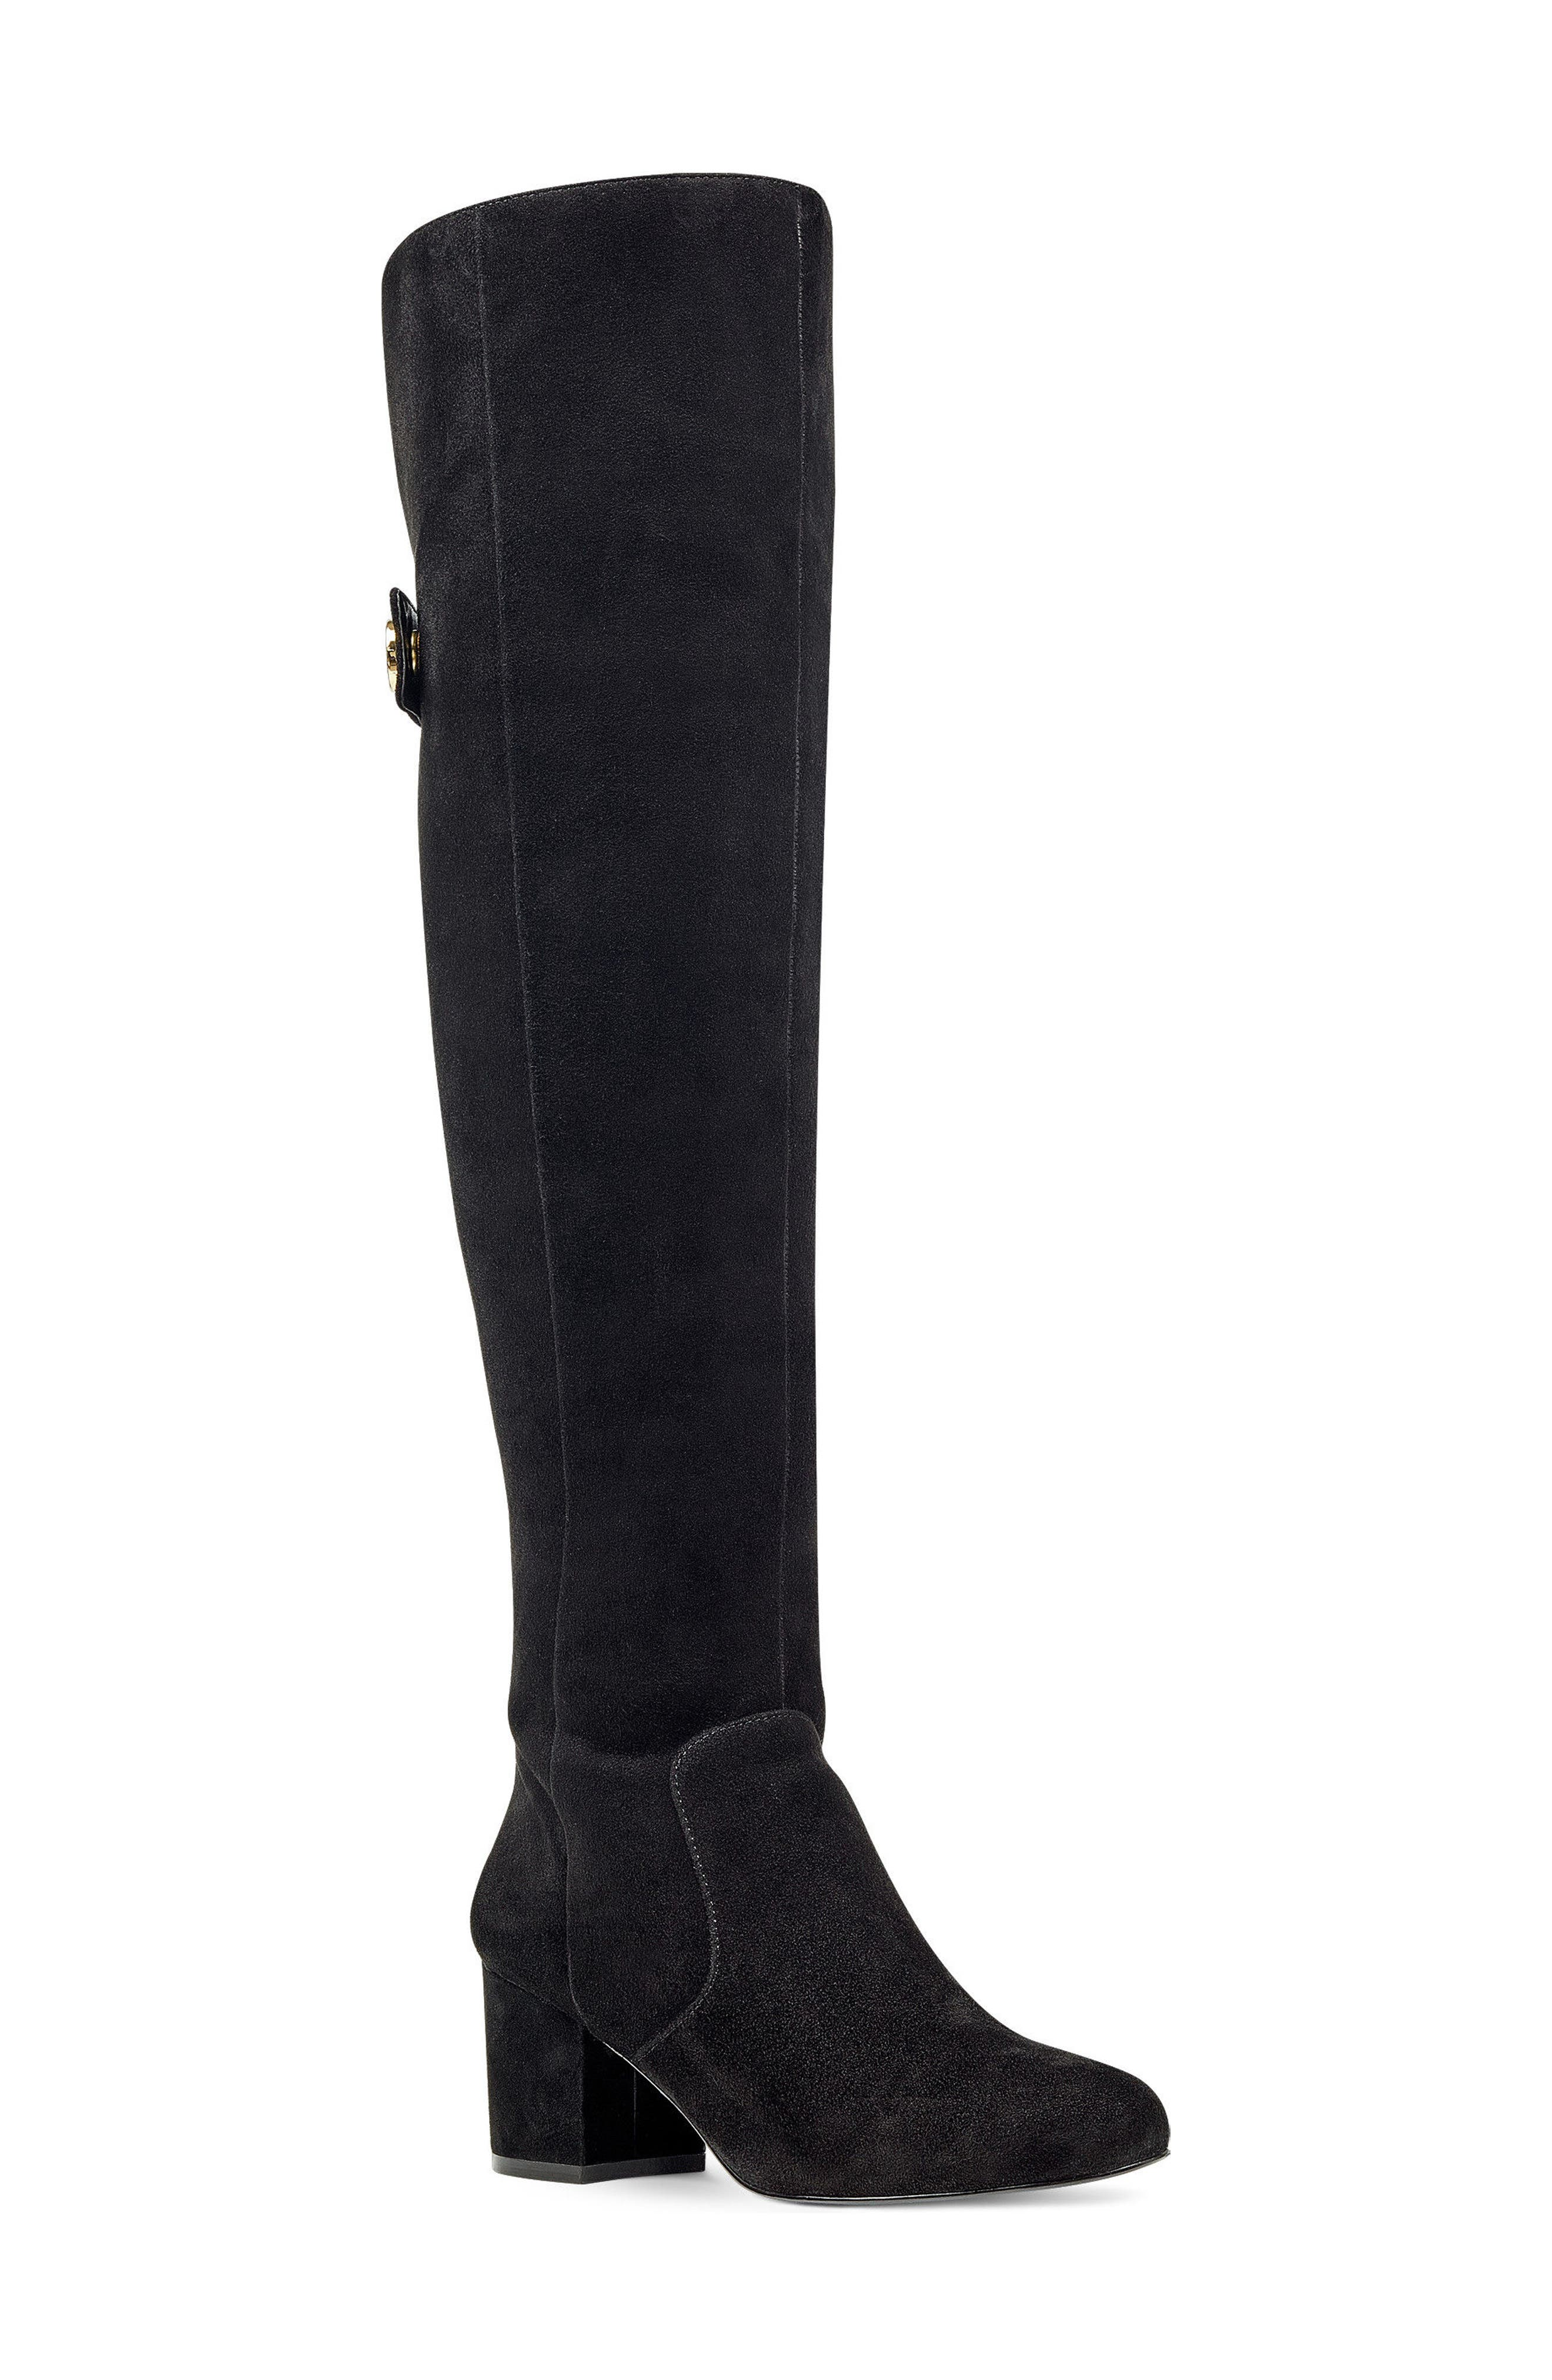 Alternate Image 1 Selected - Nine West Queddy Over the Knee Boot (Women)